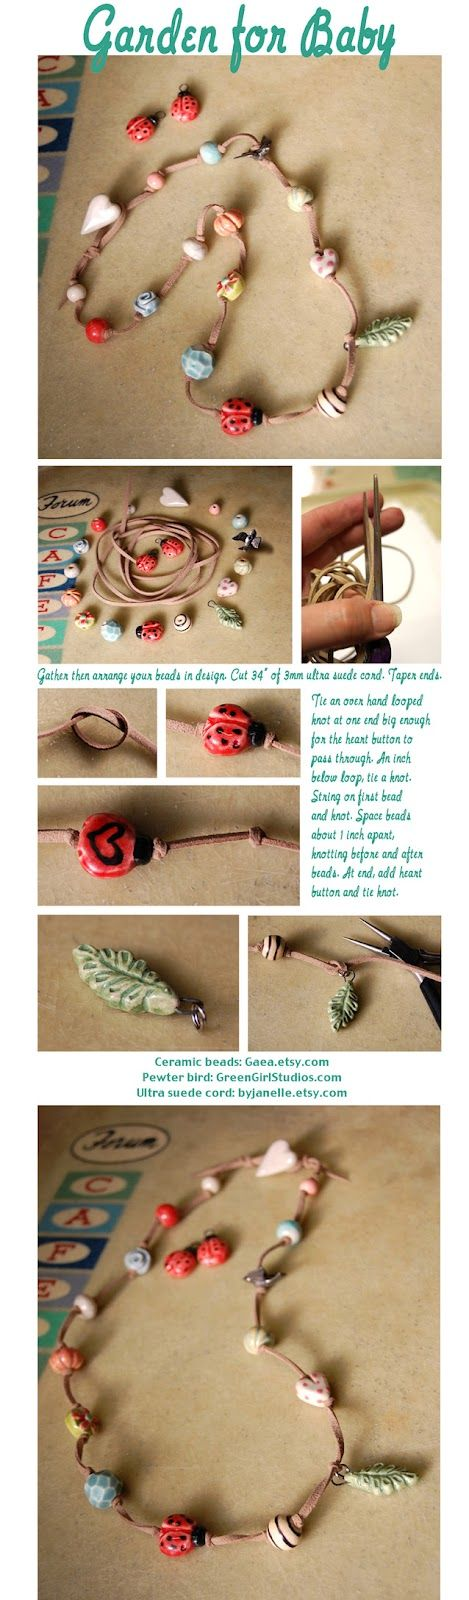 Art Bead Scene Blog: Studio Saturday with Gaea Cannaday- tied cords and beads